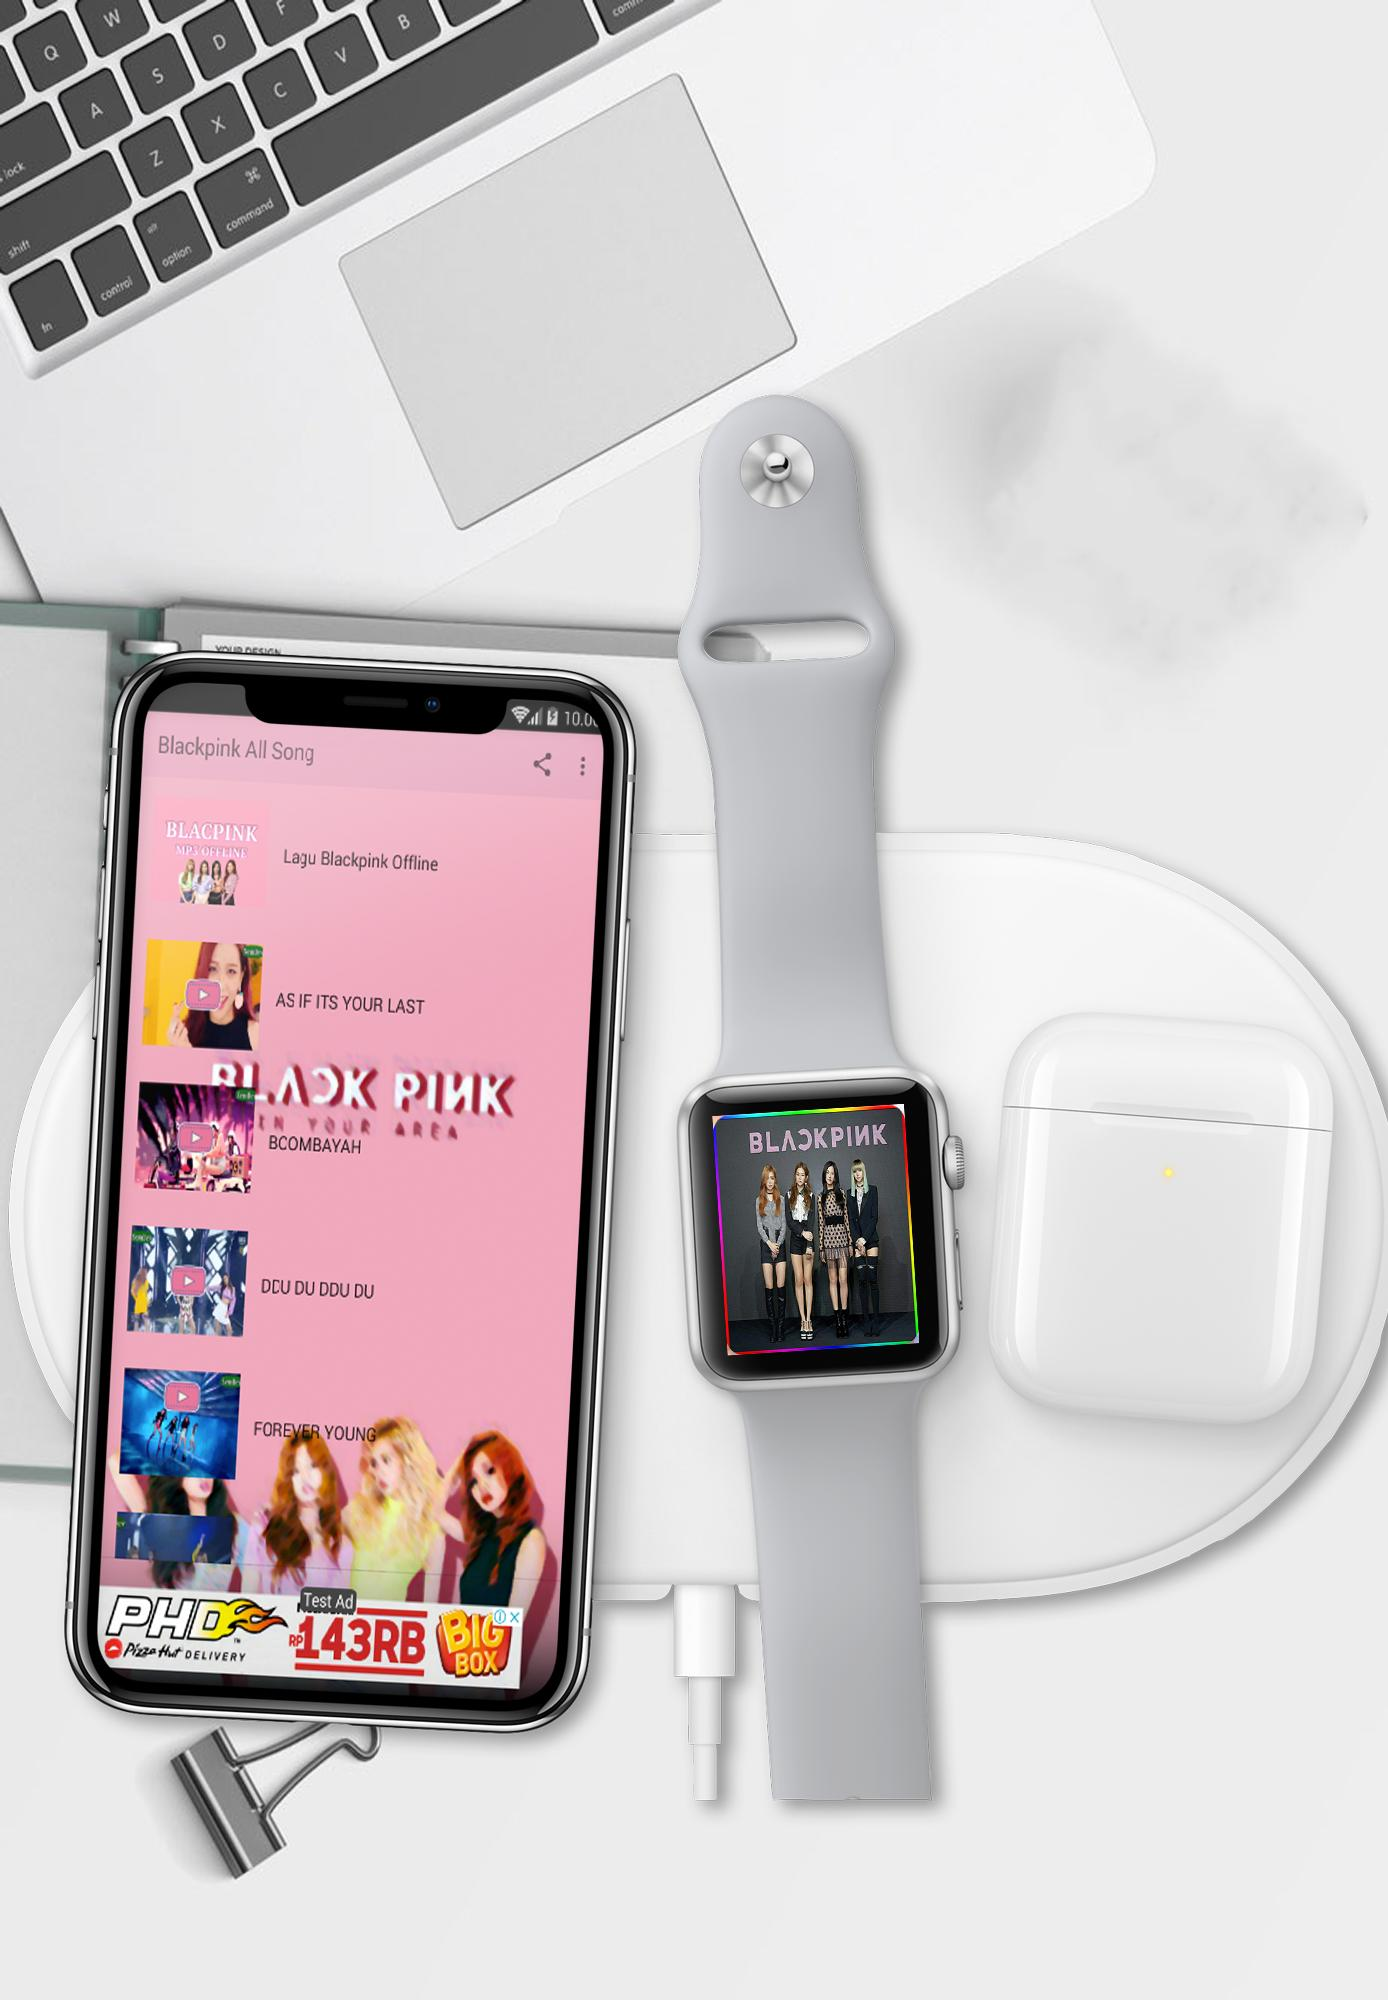 Blackpink All Songs & Videos for Android - APK Download